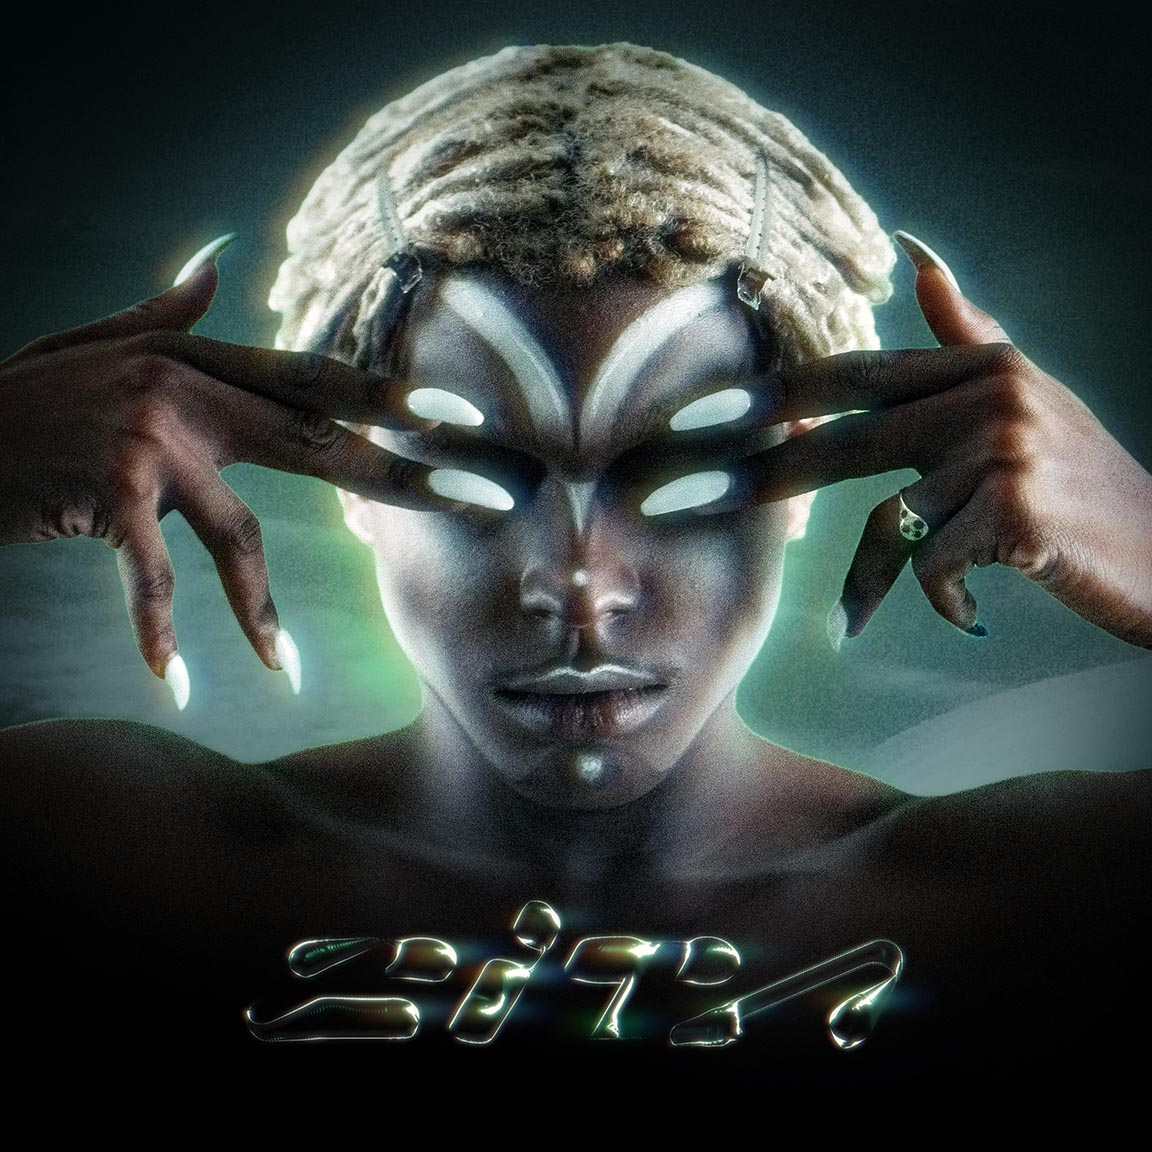 Picture of Zita's music video produced by Perimetre, a creative studio based in Paris